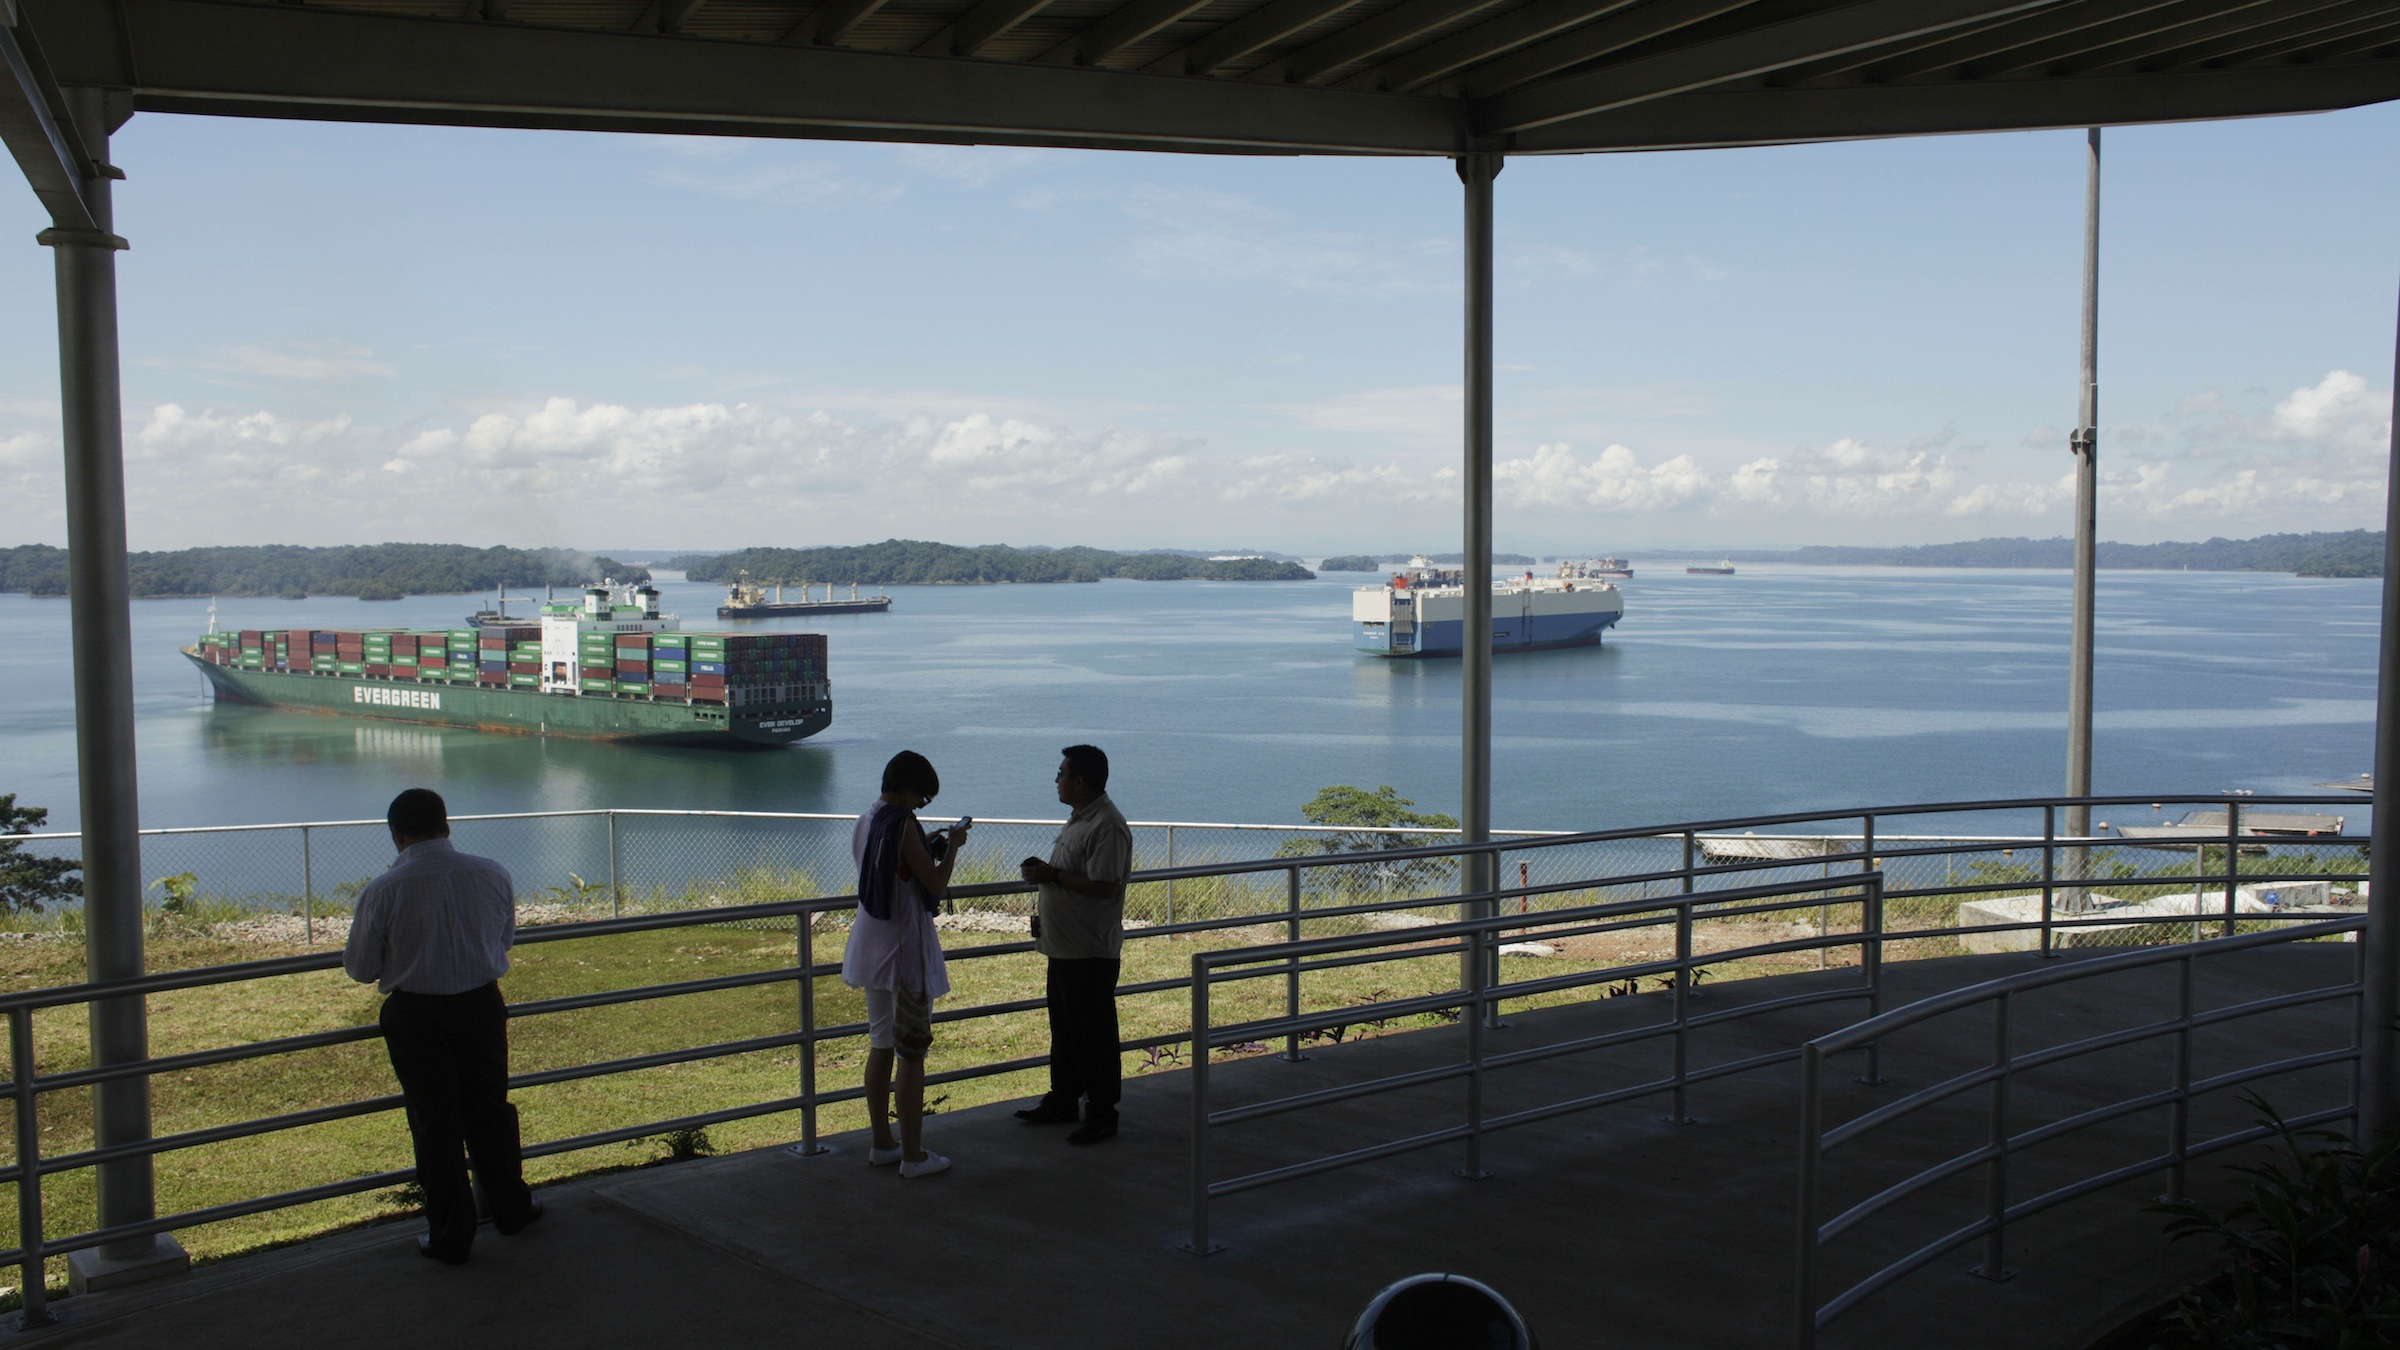 Panama canal viewing area